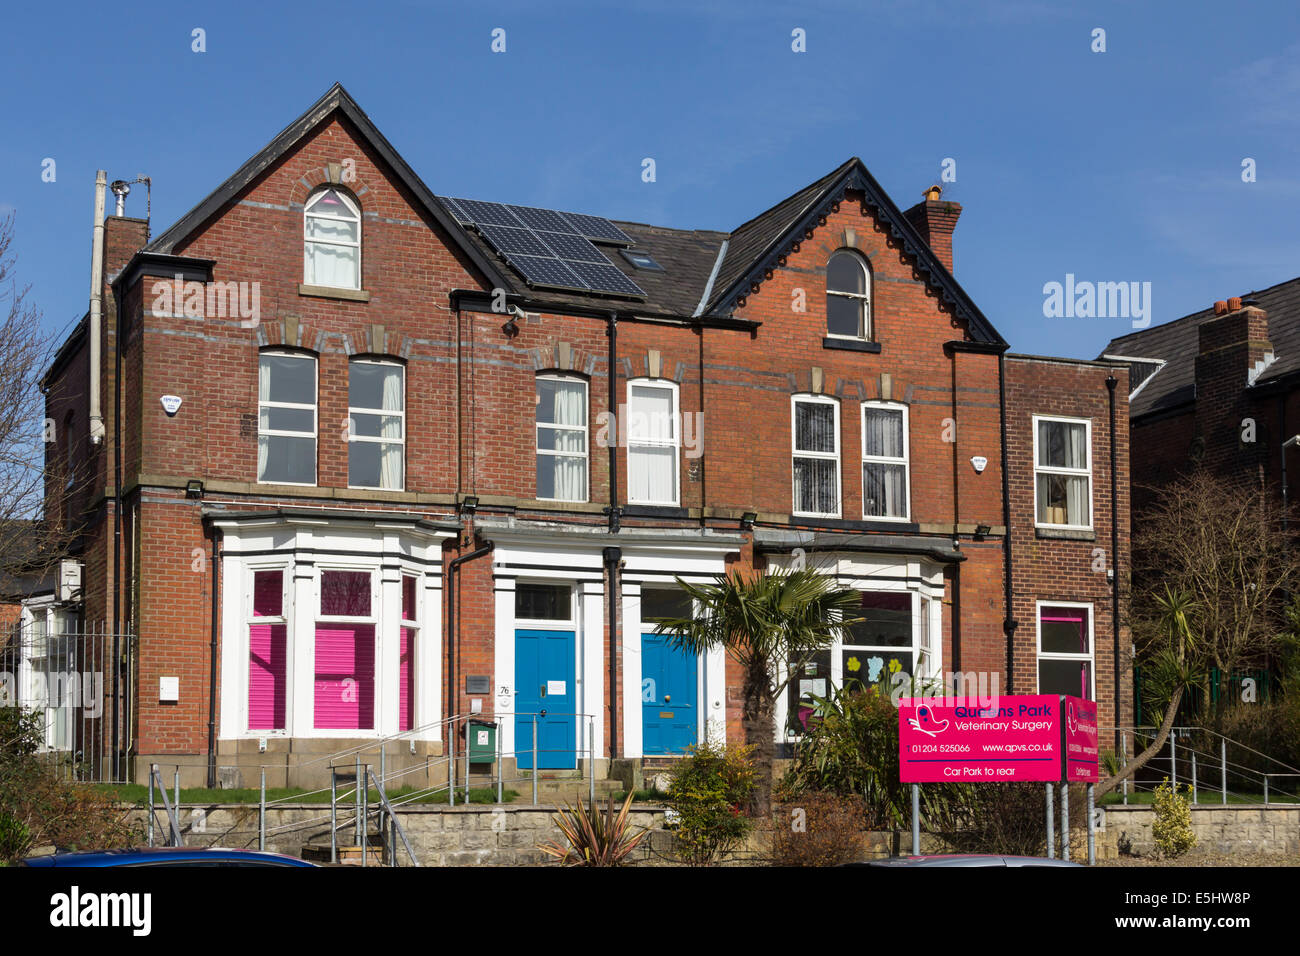 The premises of Queens Park Veterinary Surgery on Chorley New Road, Bolton, formerly a large Victorian semi-detached - Stock Image